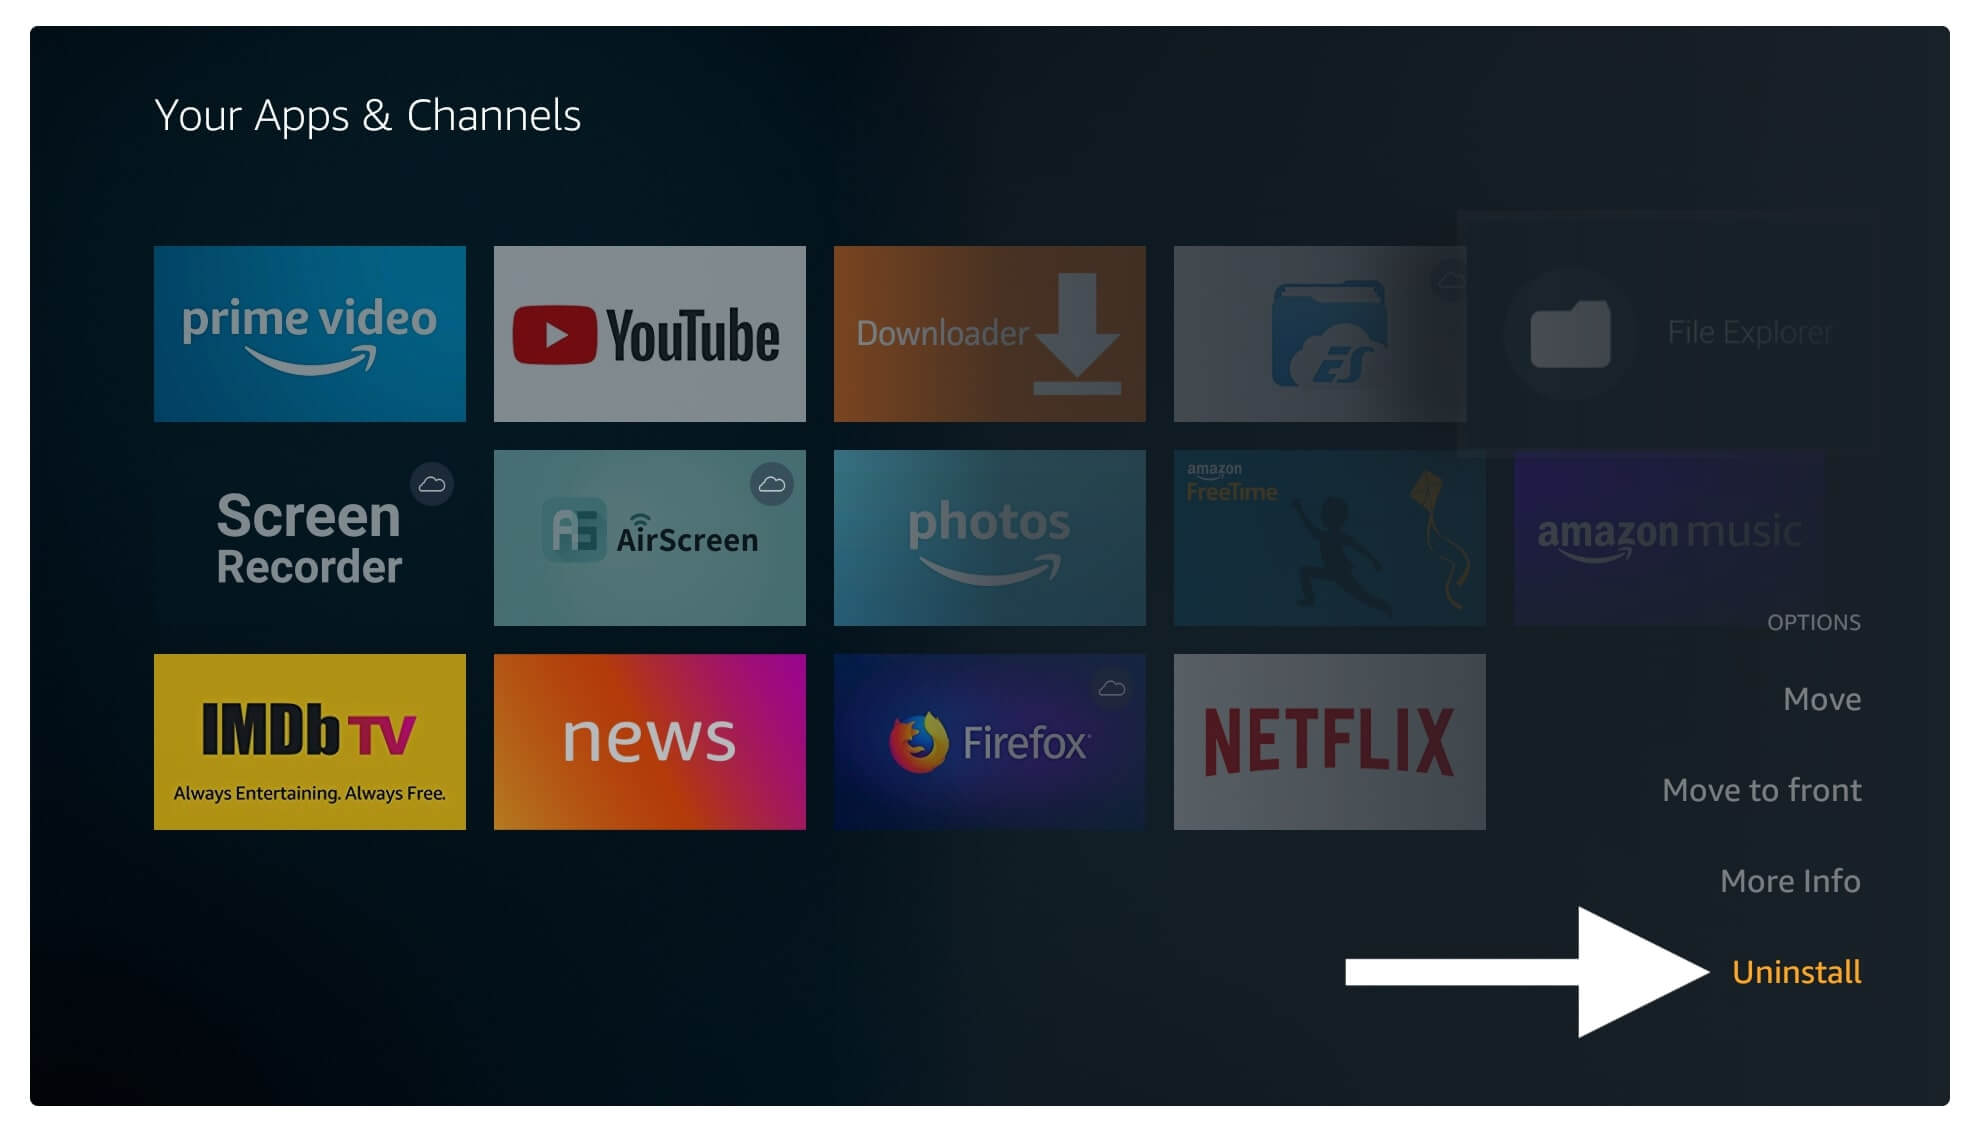 firestick-apps-delete-and-uninstall